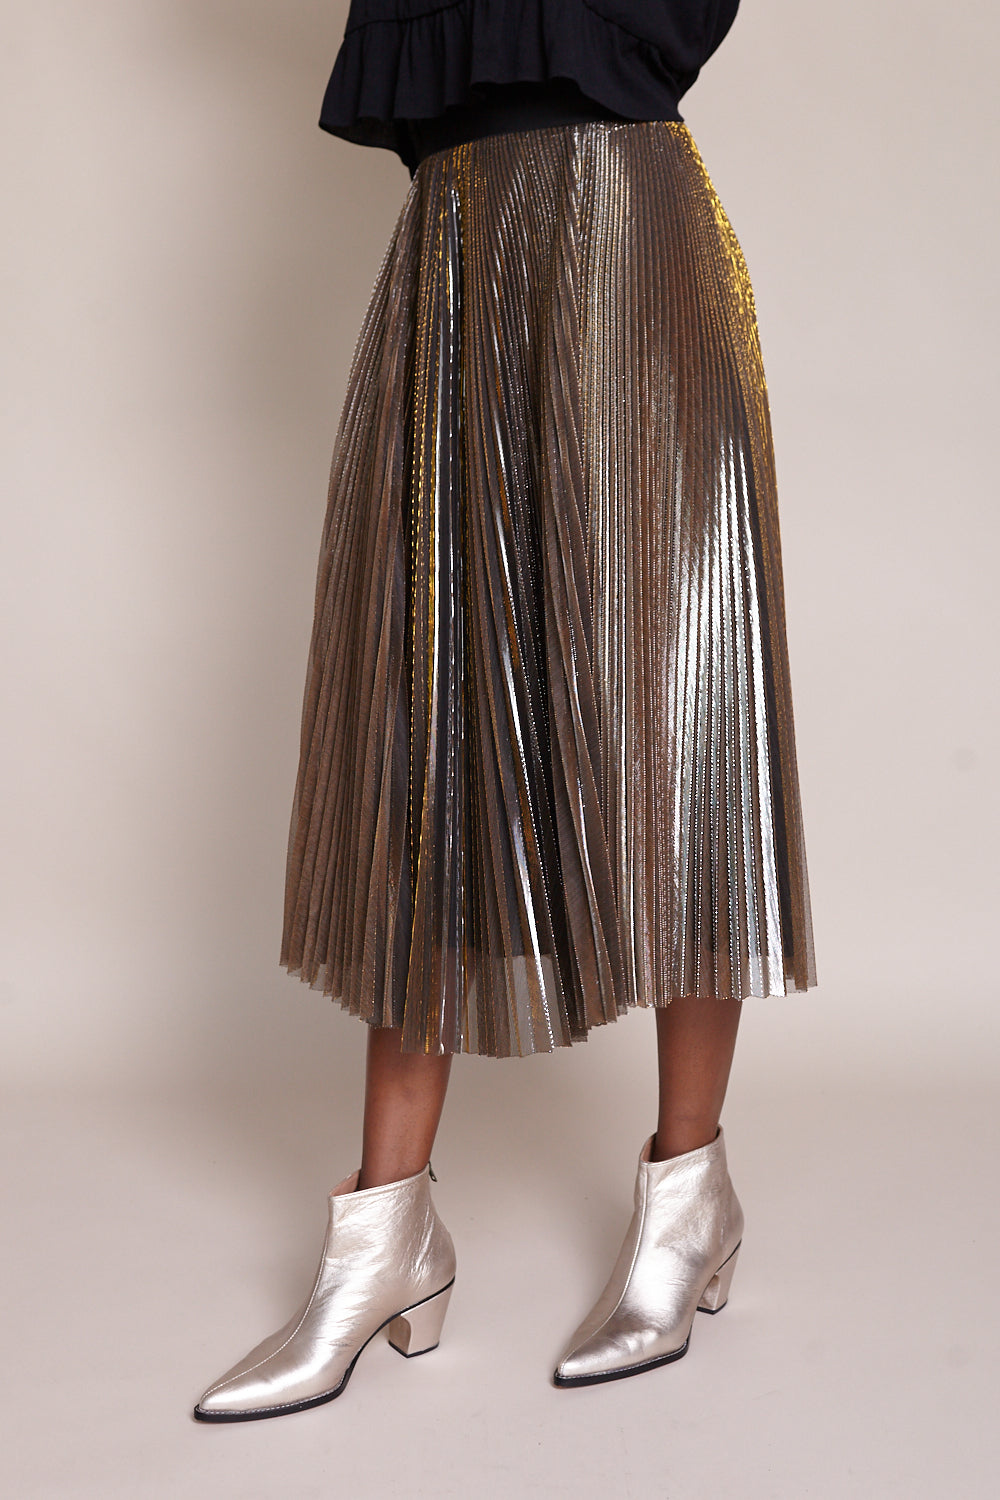 Romana Skirt in Gold